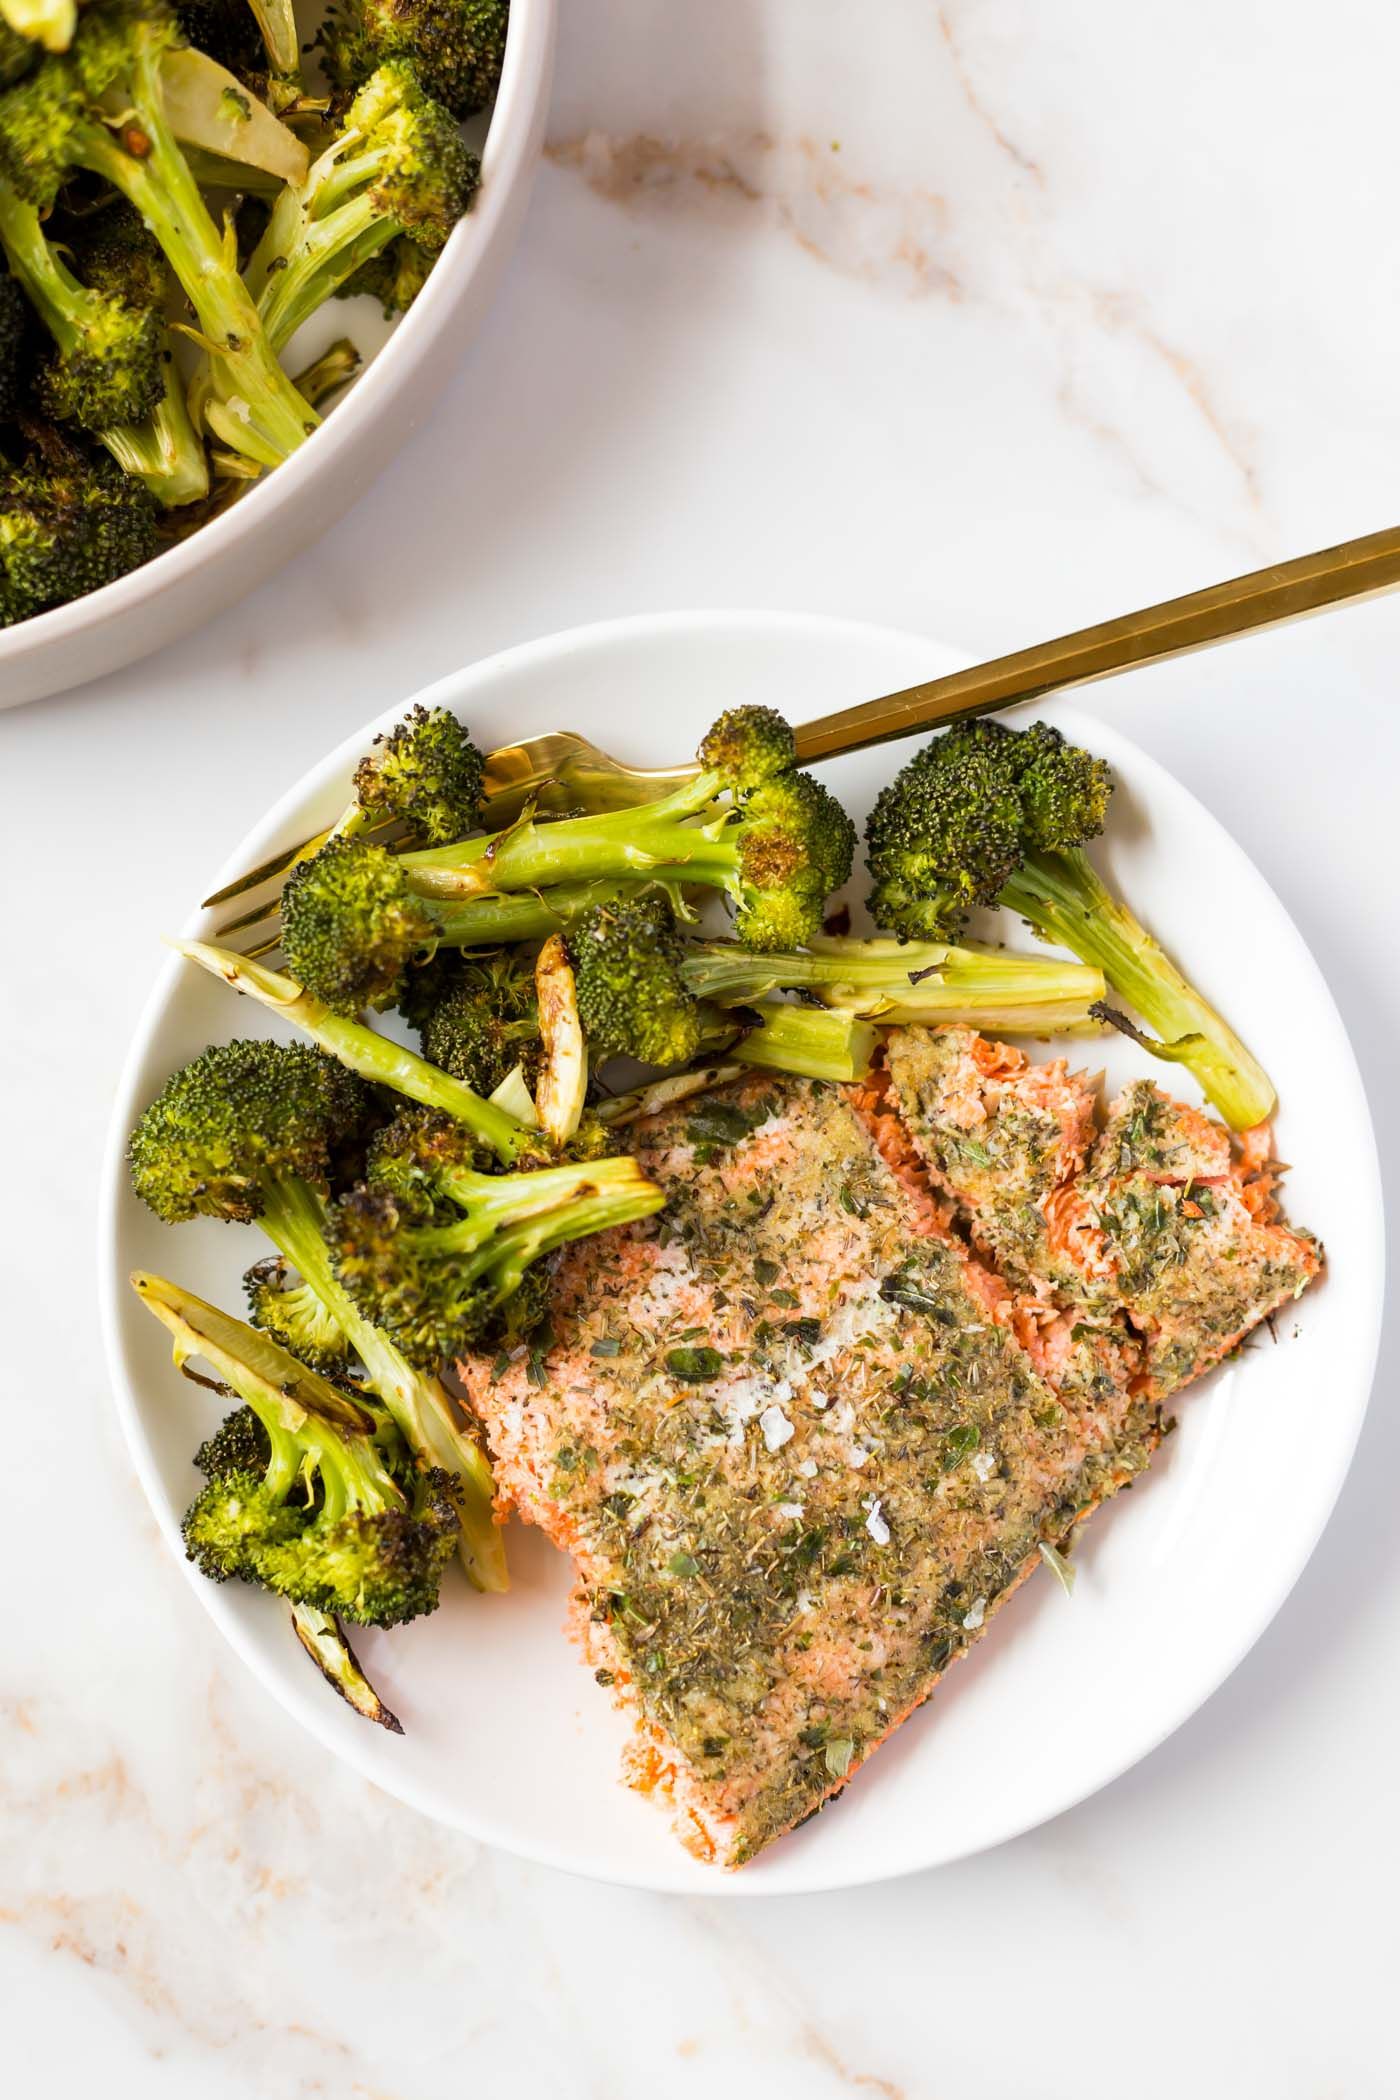 Baked salmon with roasted broccoli on white plate and roasted broccoli in corner